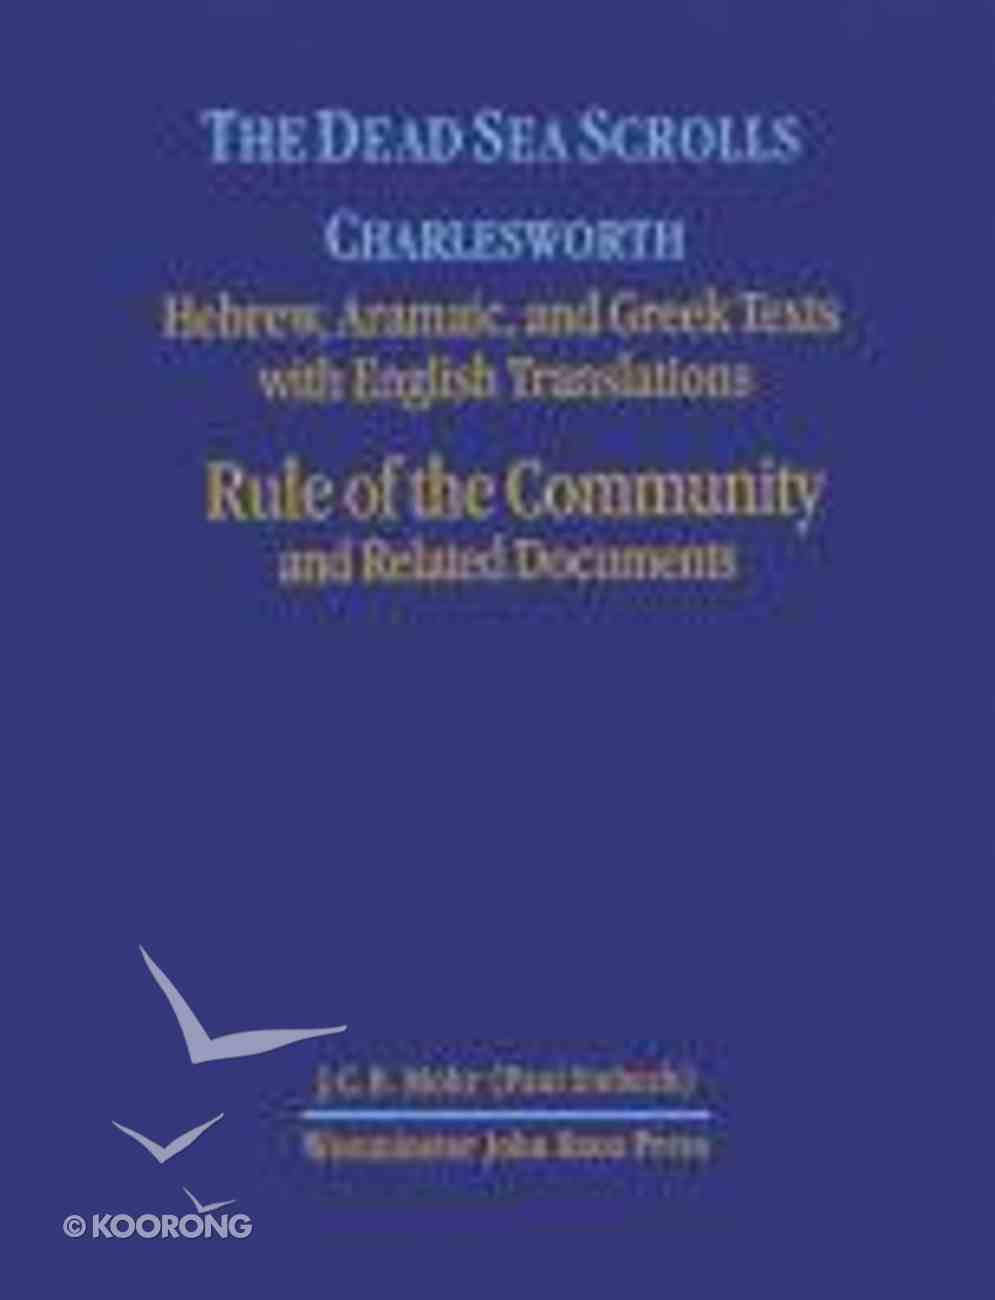 Rule of the Community and Related Documents (Dead Sea Scrolls (Princeton Theological Seminar) Series) Hardback